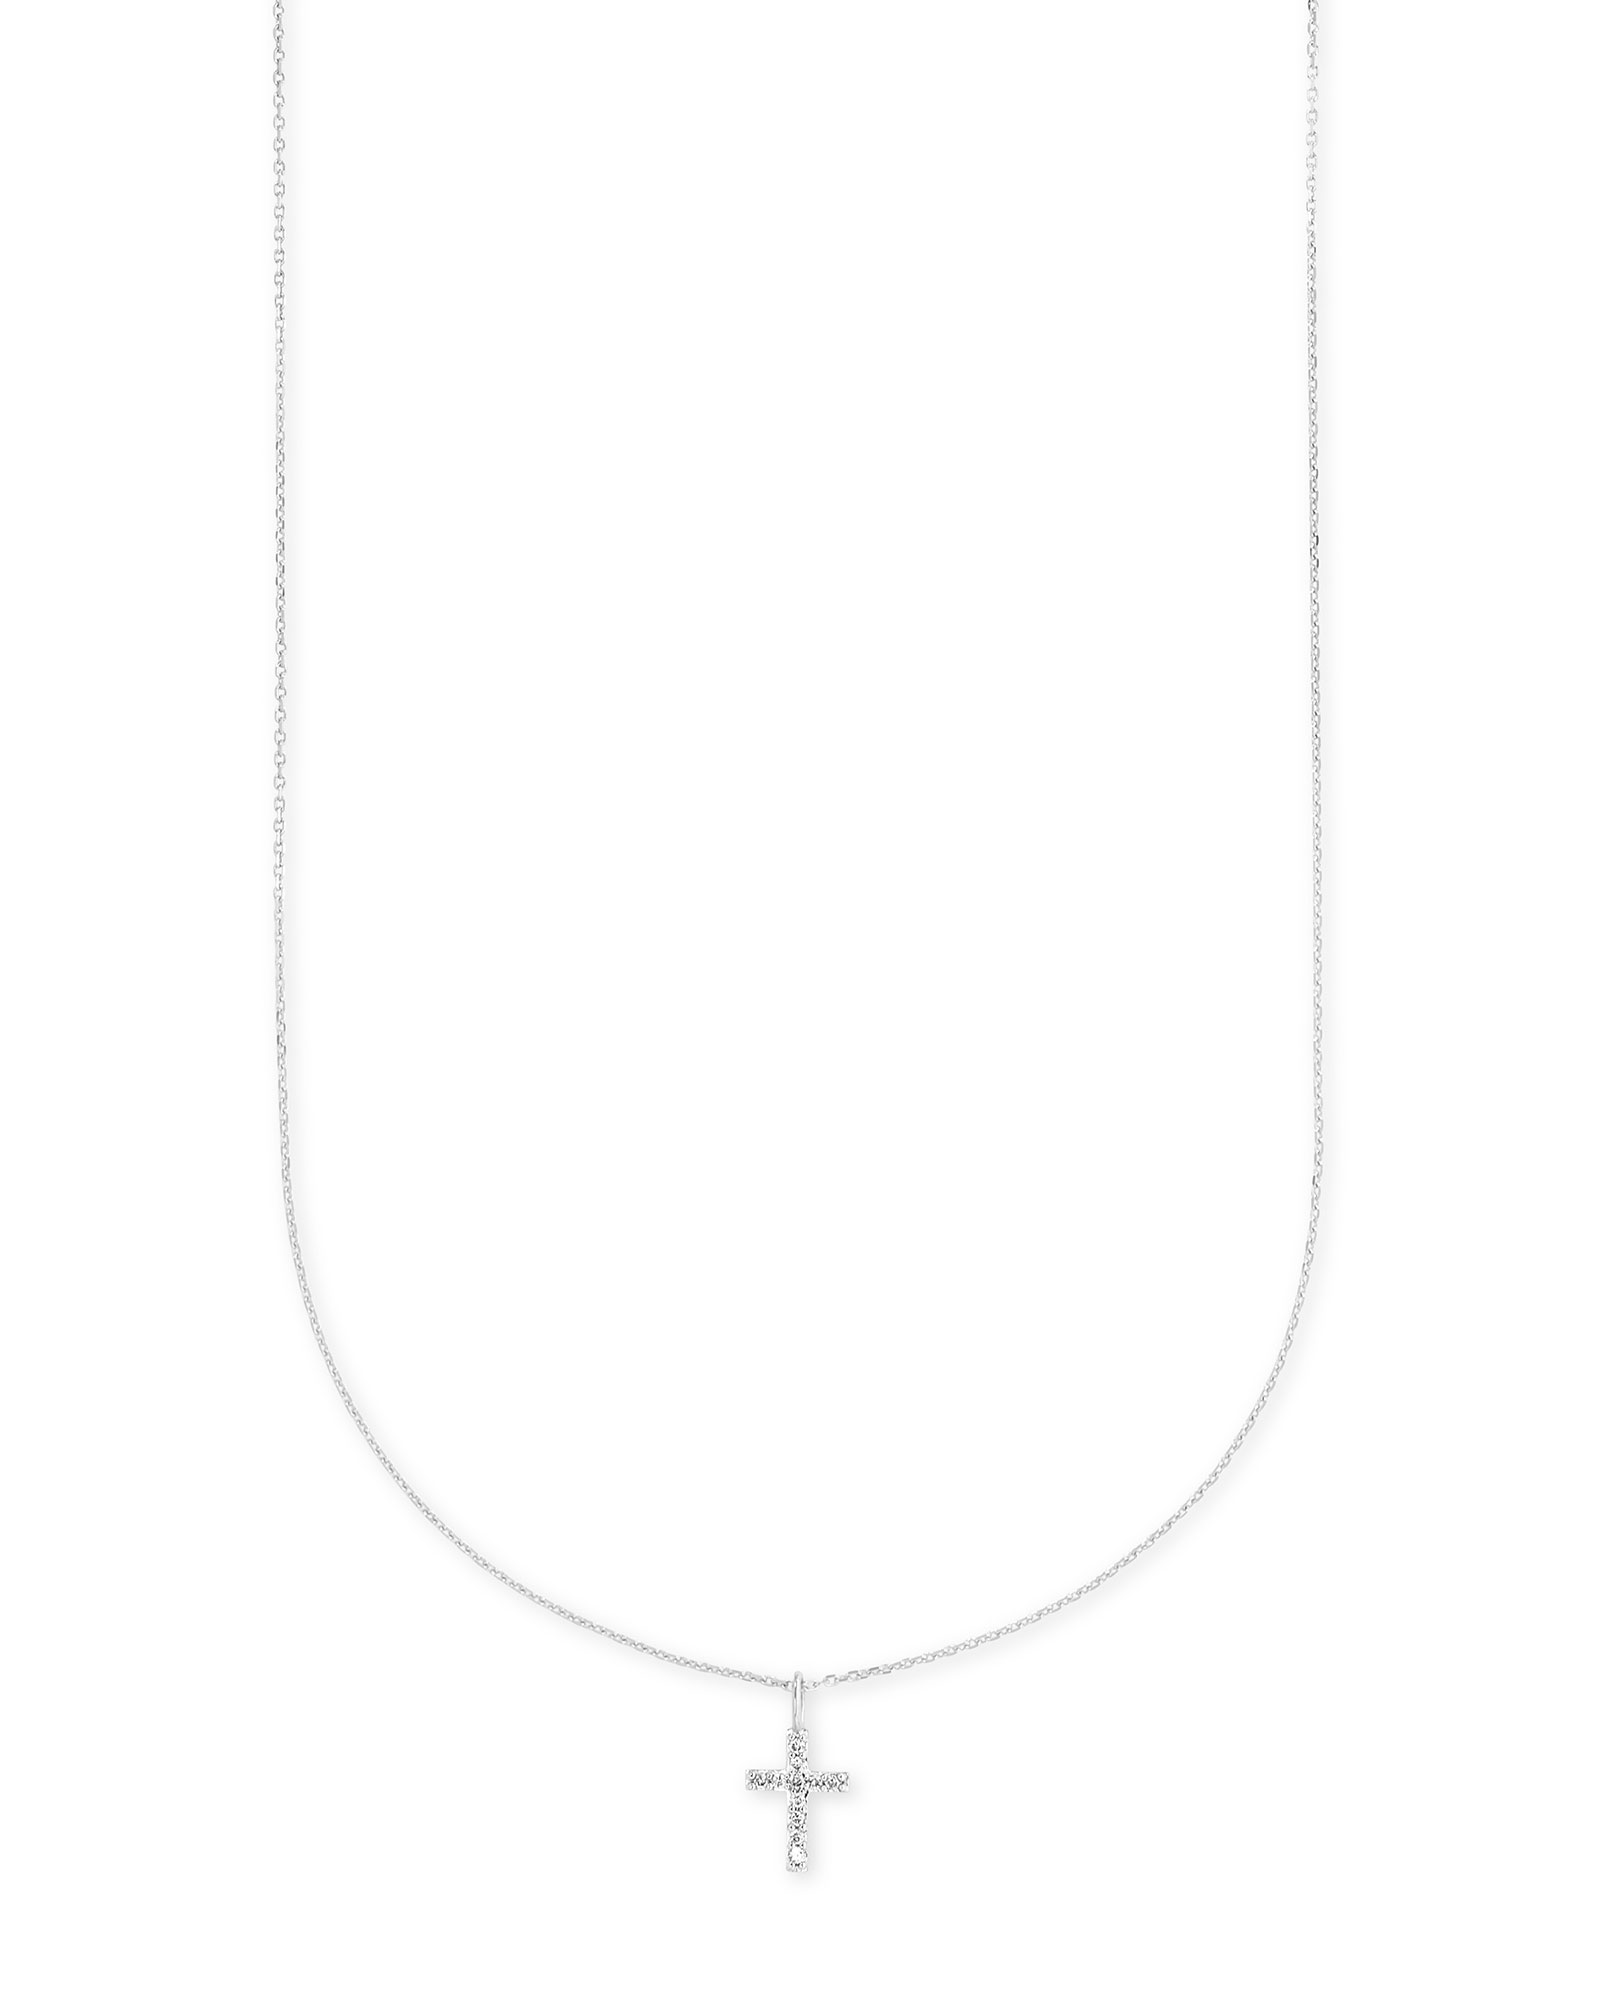 Cross 14k White Gold Pendant Necklace in White Diamonds